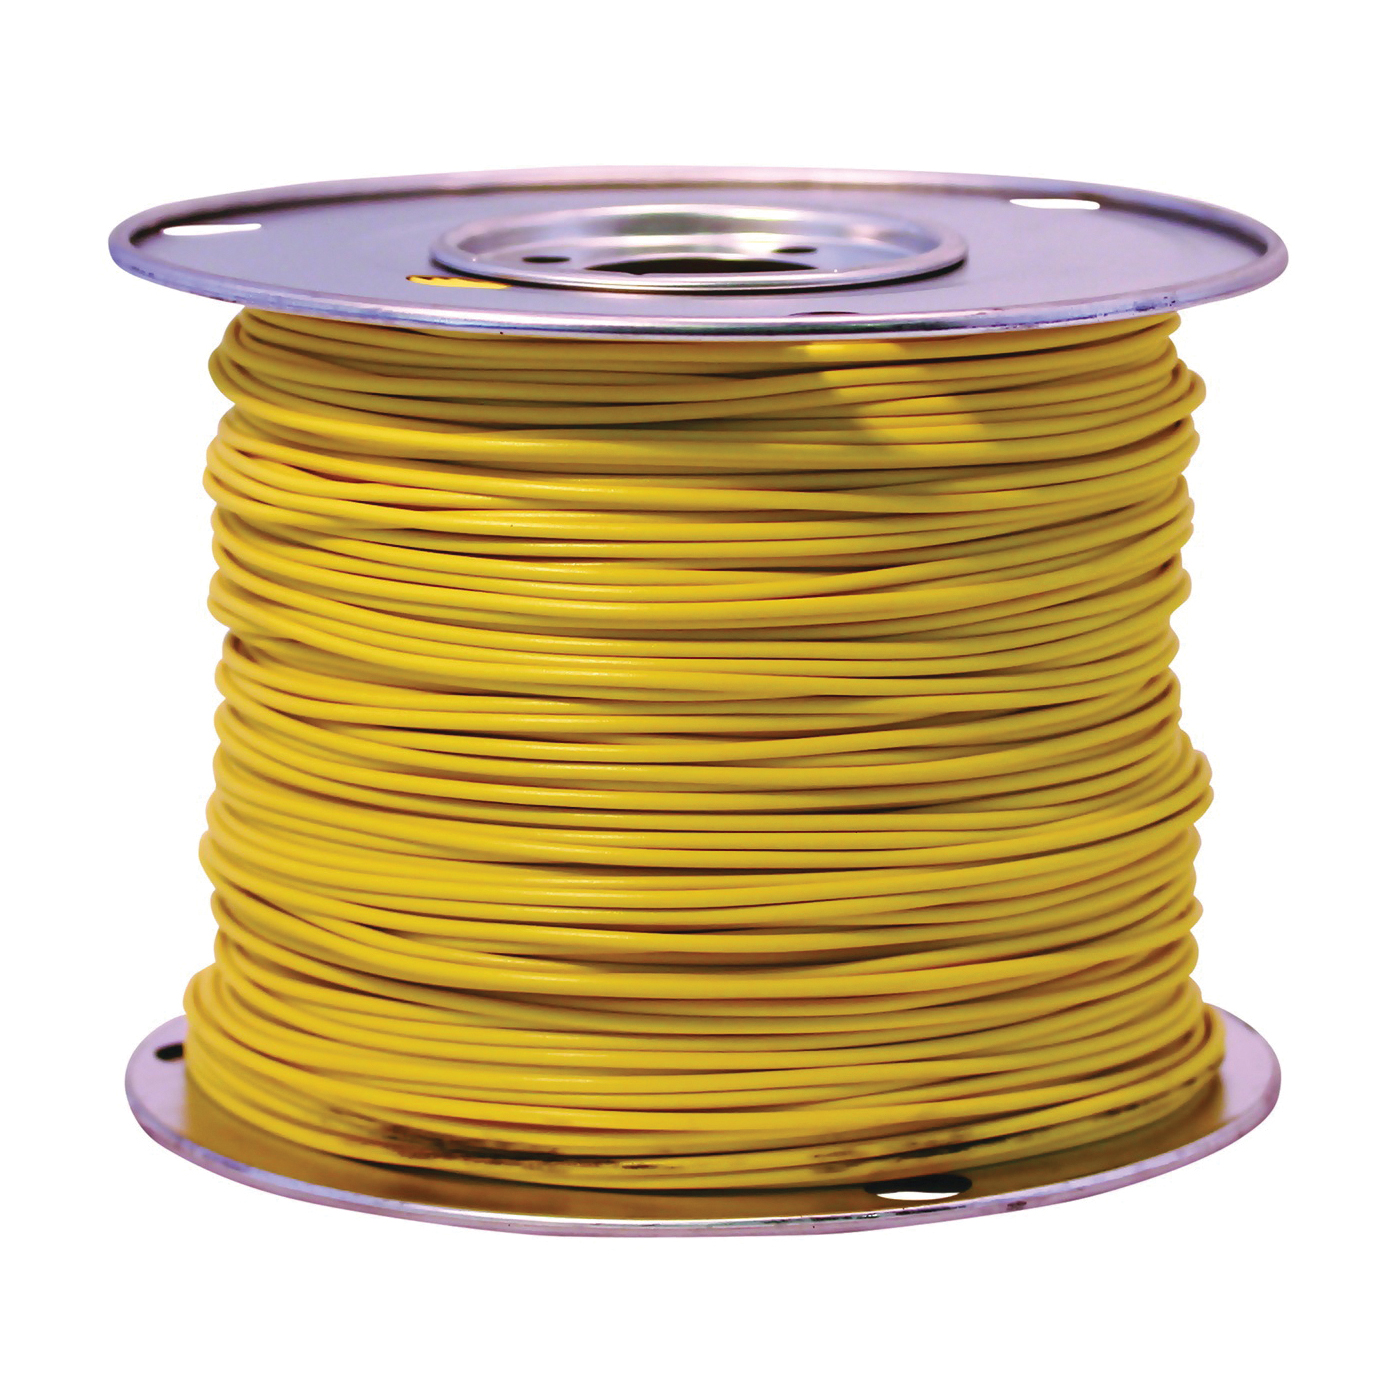 Picture of CCI 55668323 Primary Wire, 16 AWG Wire, 1 -Conductor, 60 VDC, Copper Conductor, Yellow Sheath